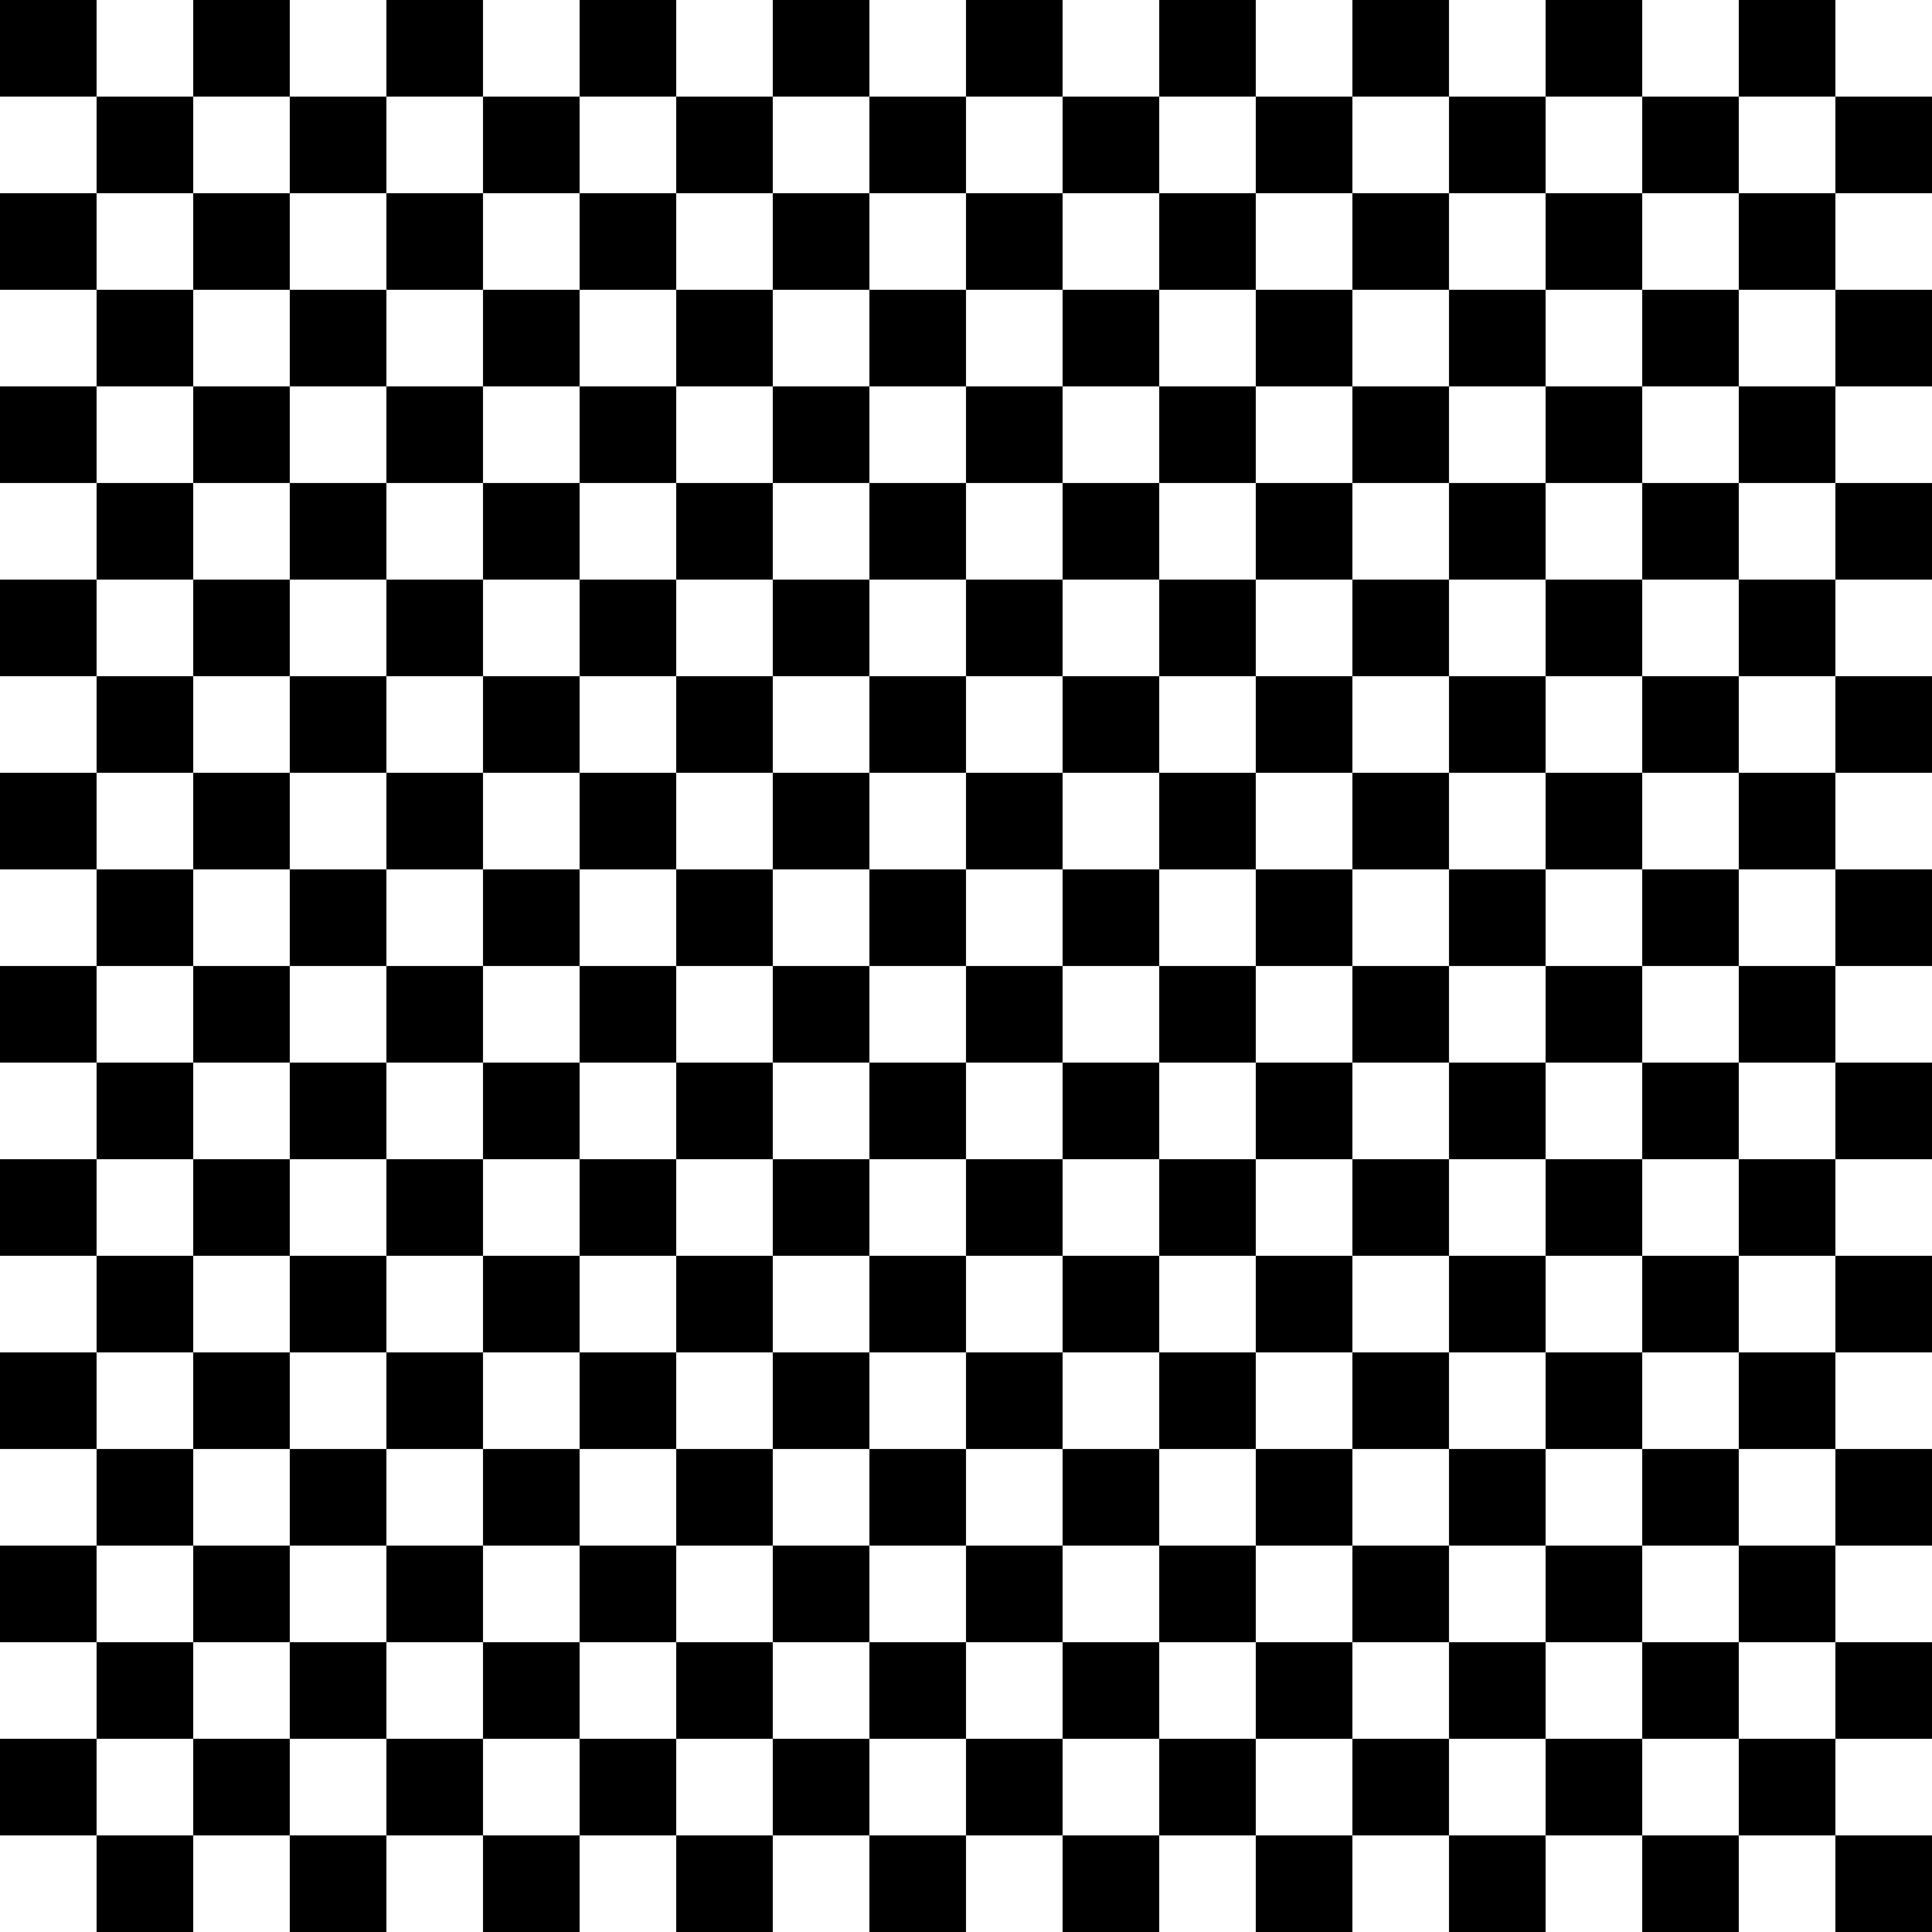 checkered background clipart clipground checkerboard clip art black and white checkerboard clip art free